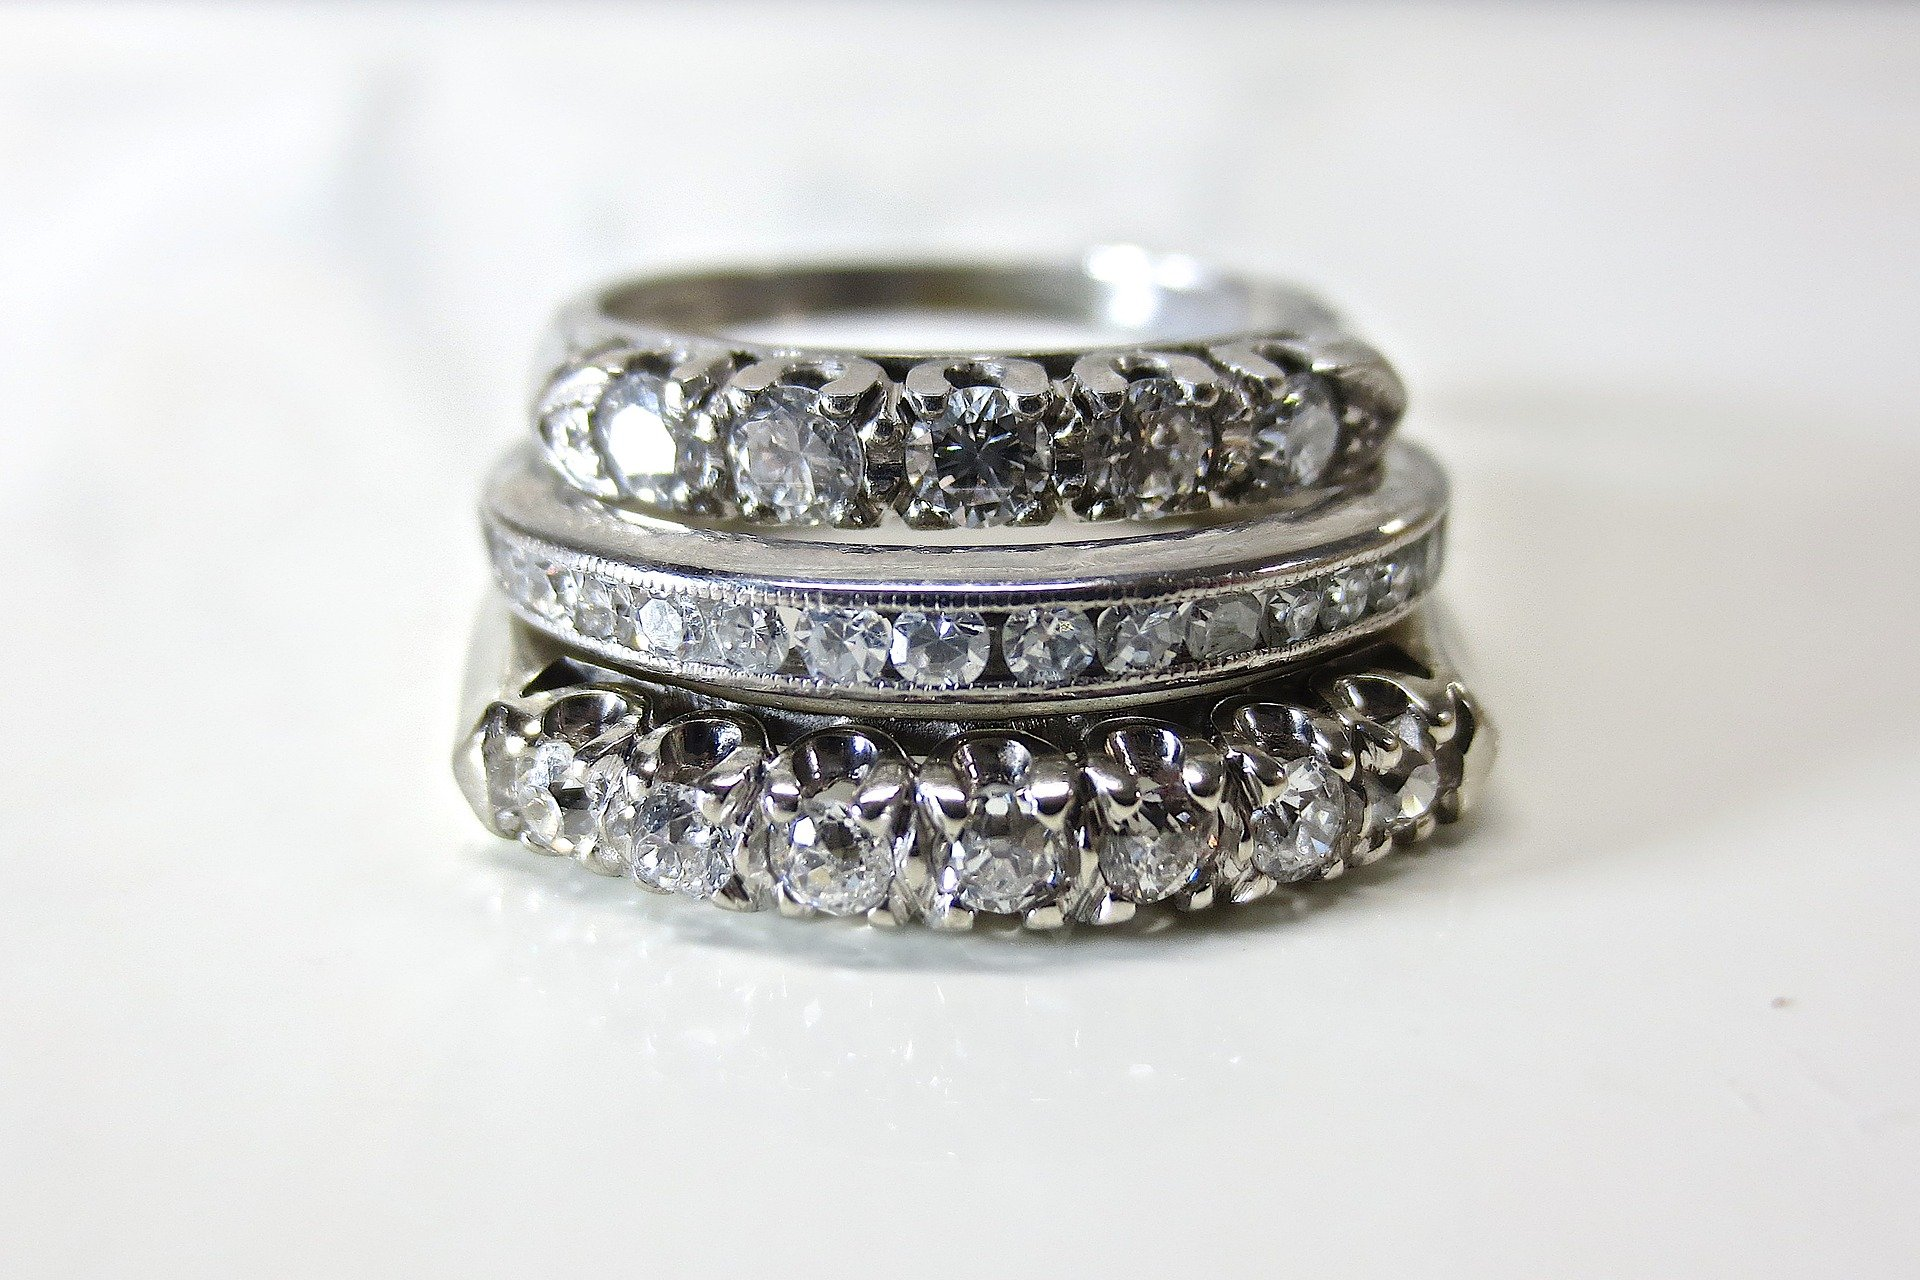 Heirloom Etiquette Guide for Engagement & Wedding Rings